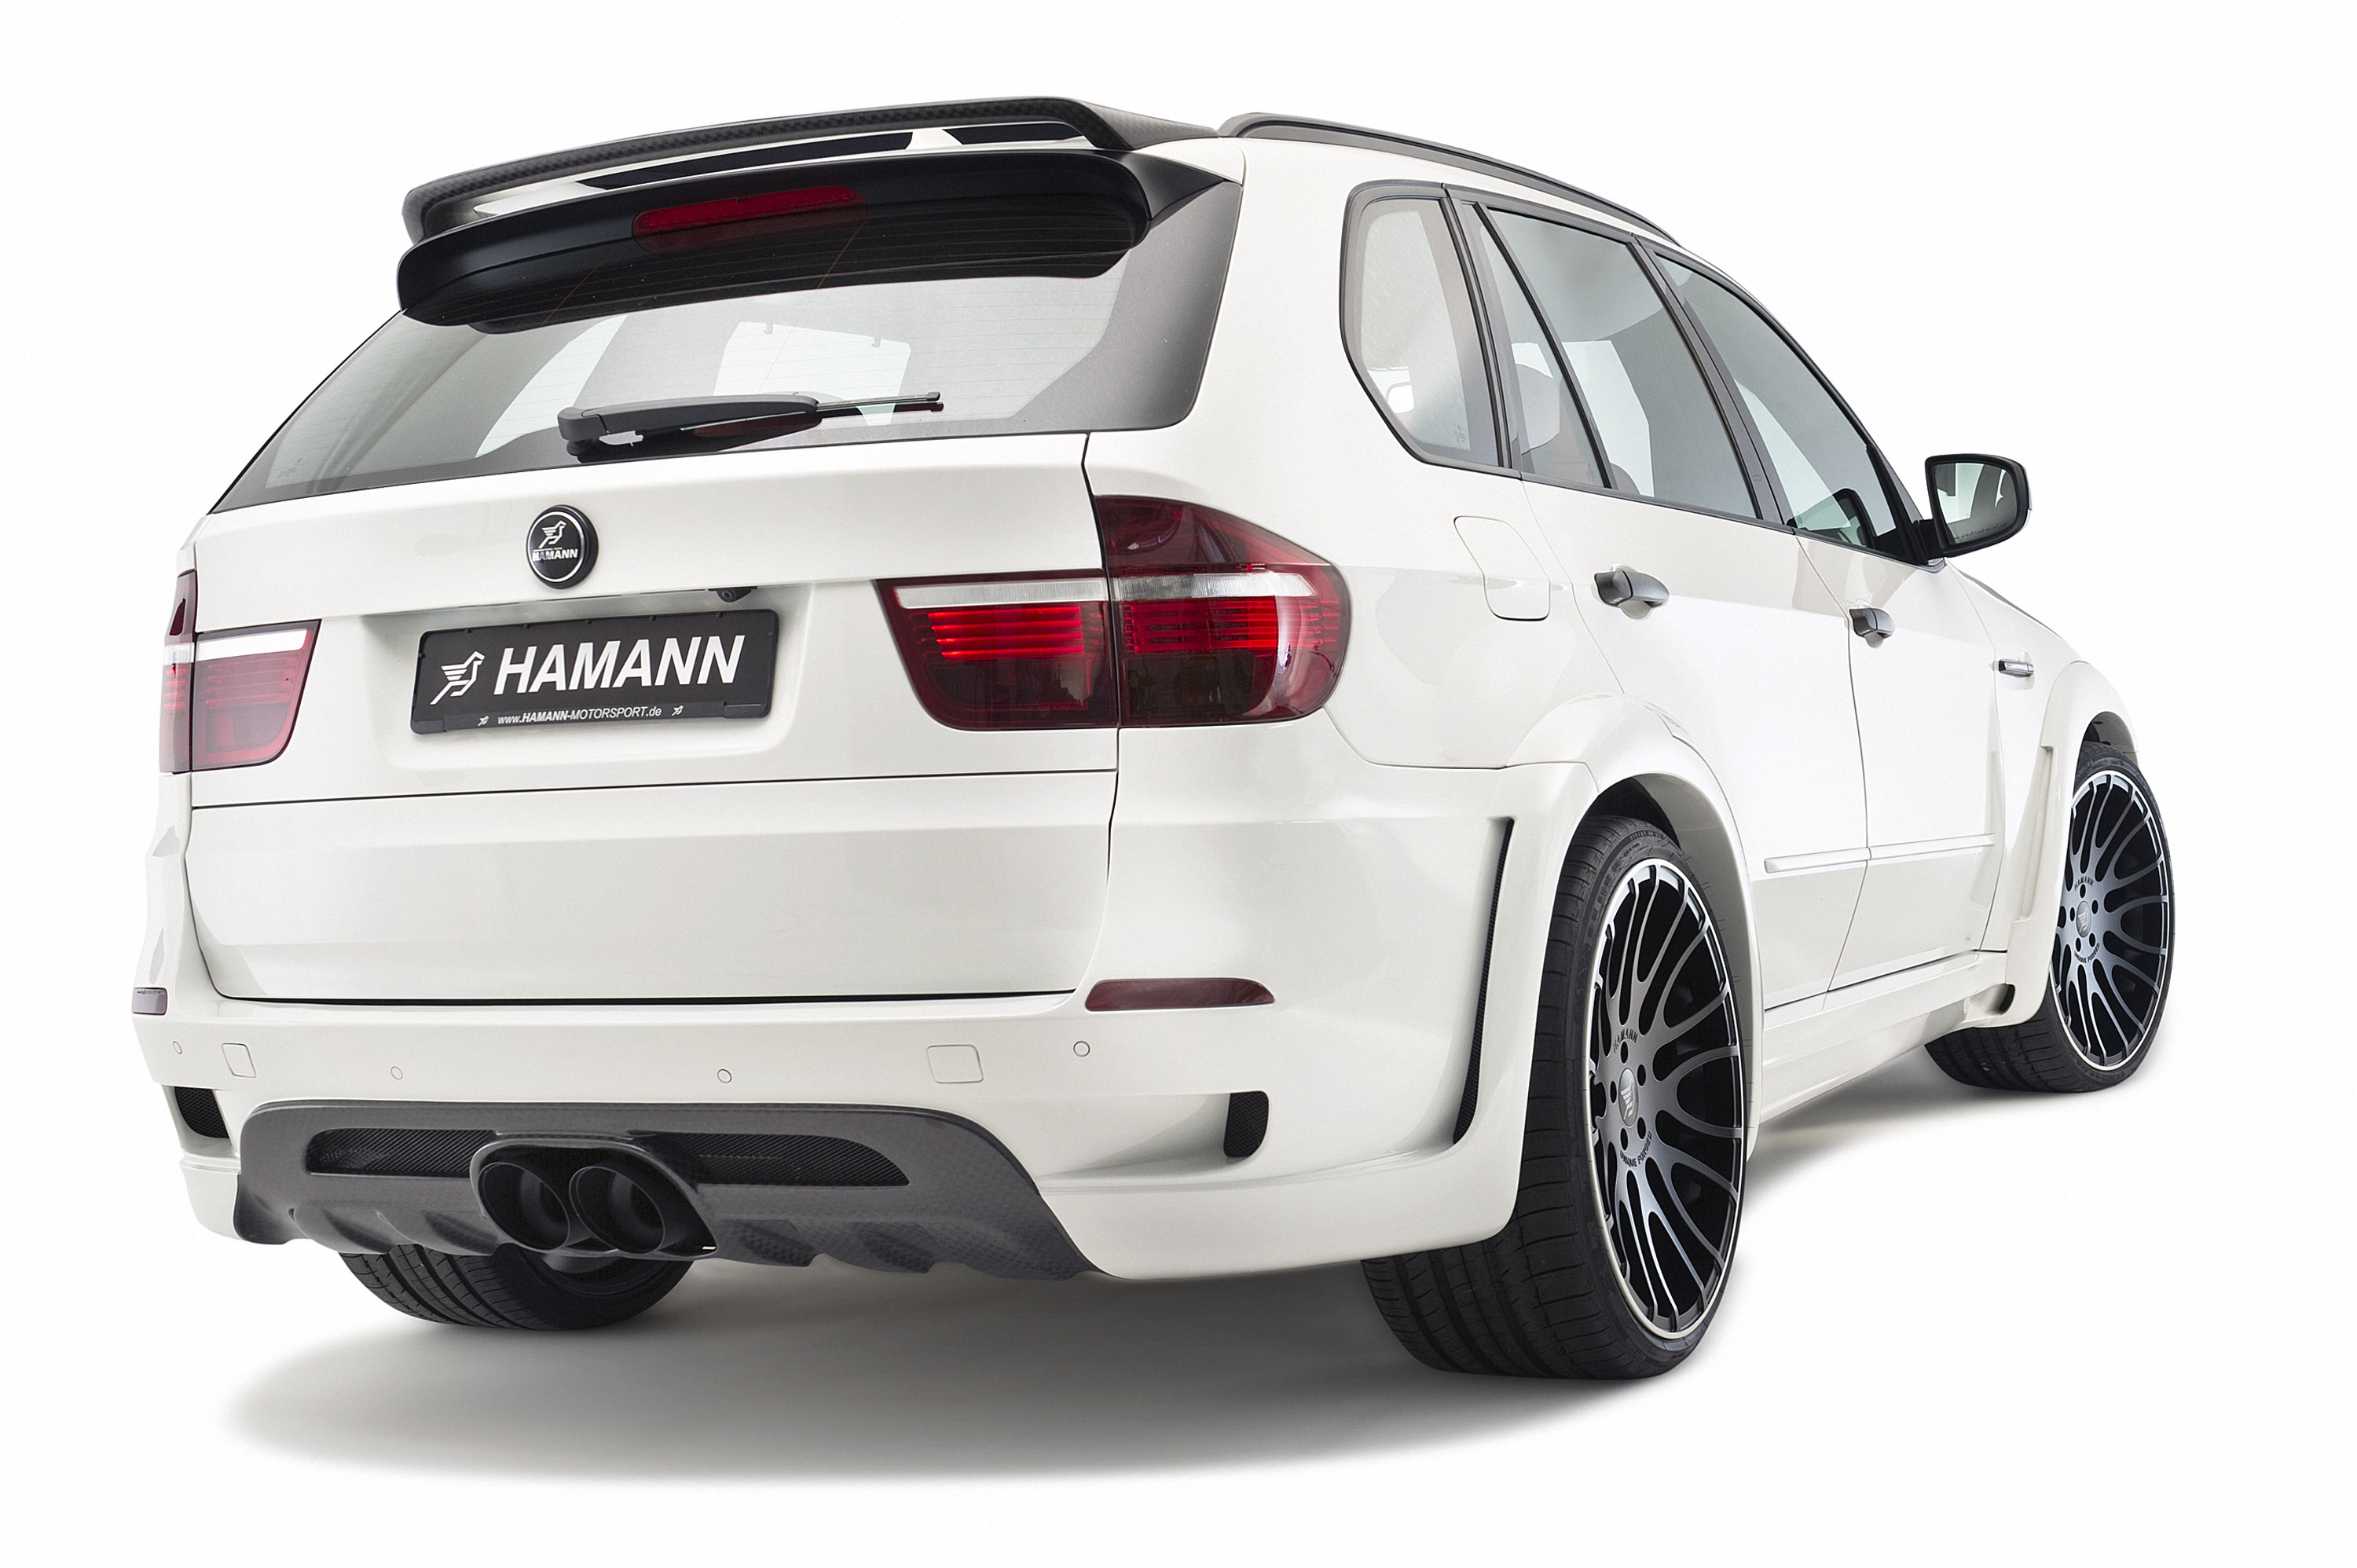 2010 Hamann BMW X5 M - Picture 45260